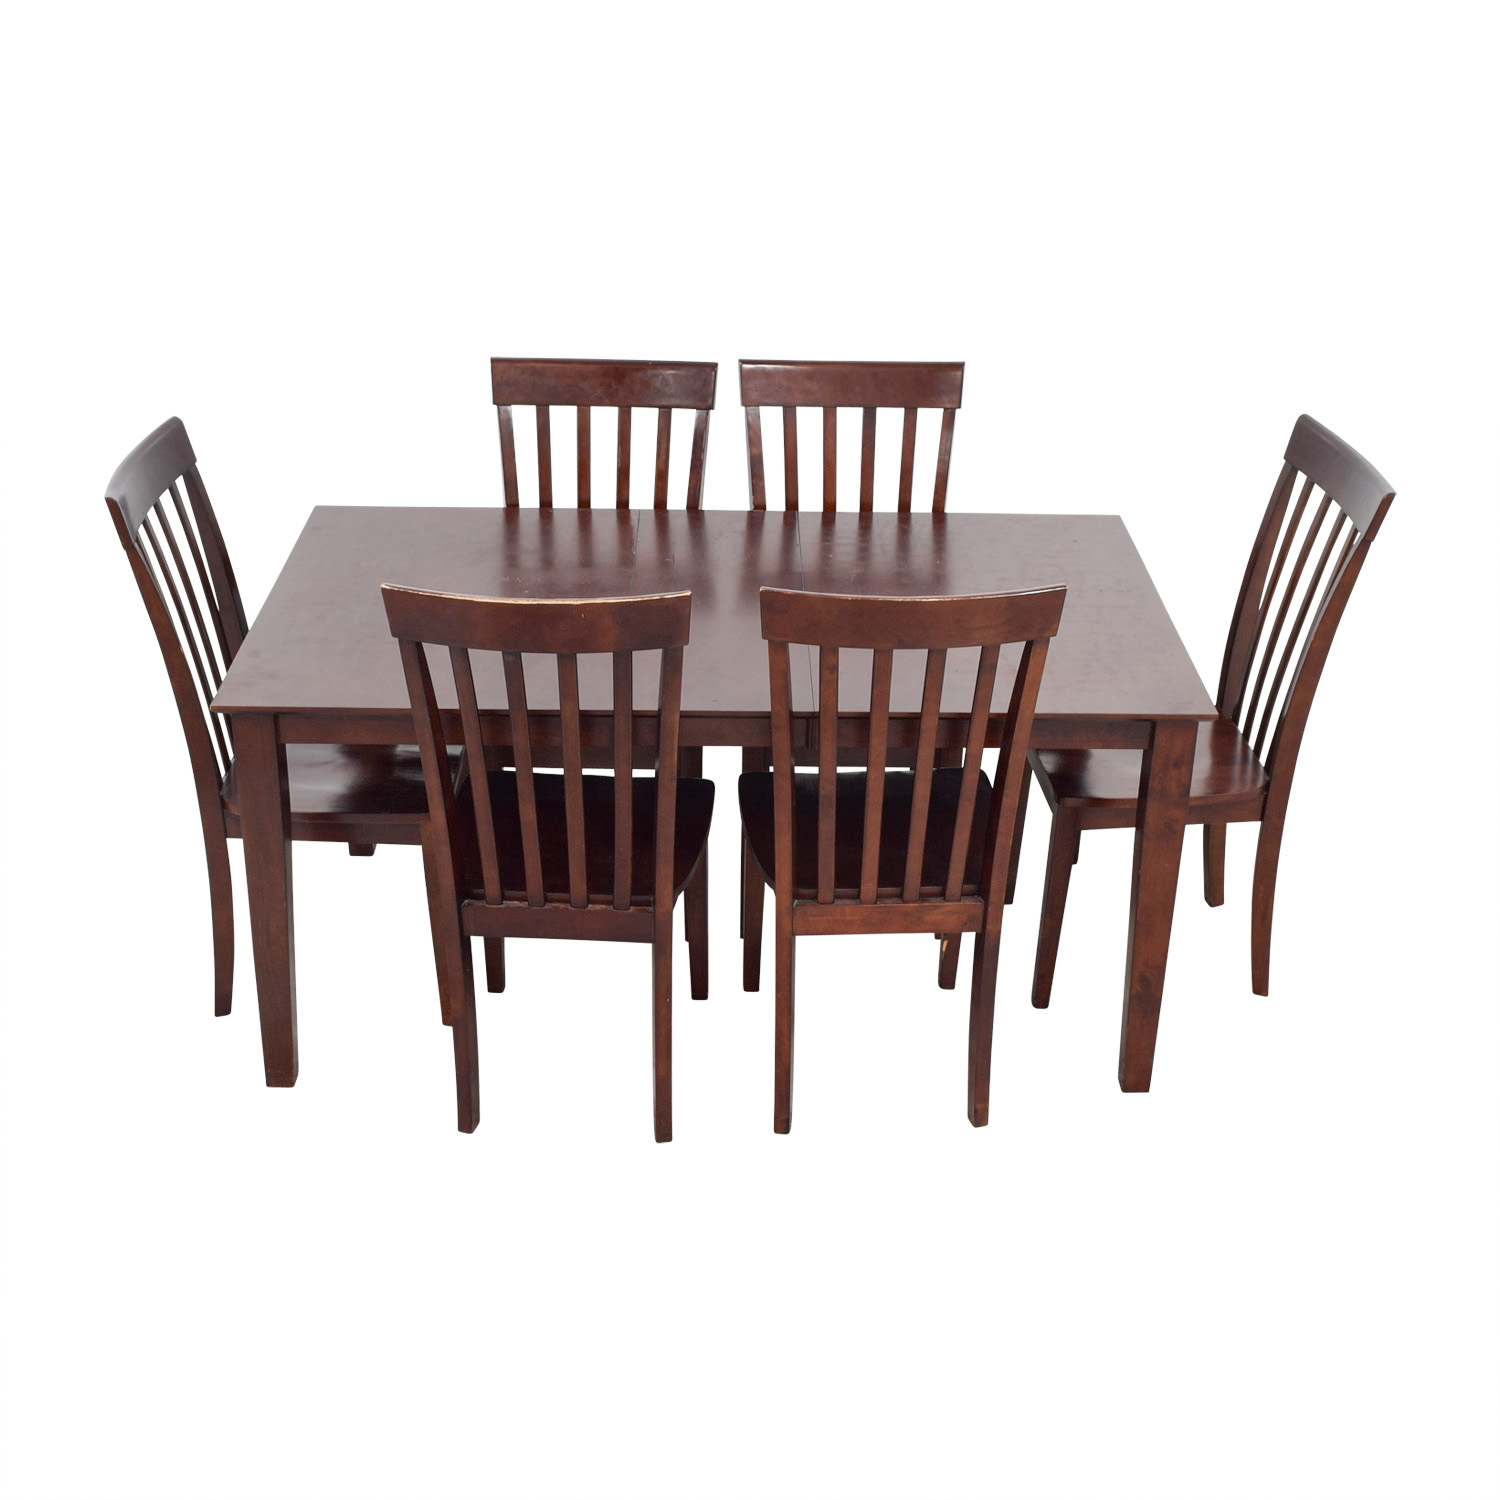 used dining room furniture | 89% OFF - Bob's Discount Furniture Bob's Furniture Dining ...